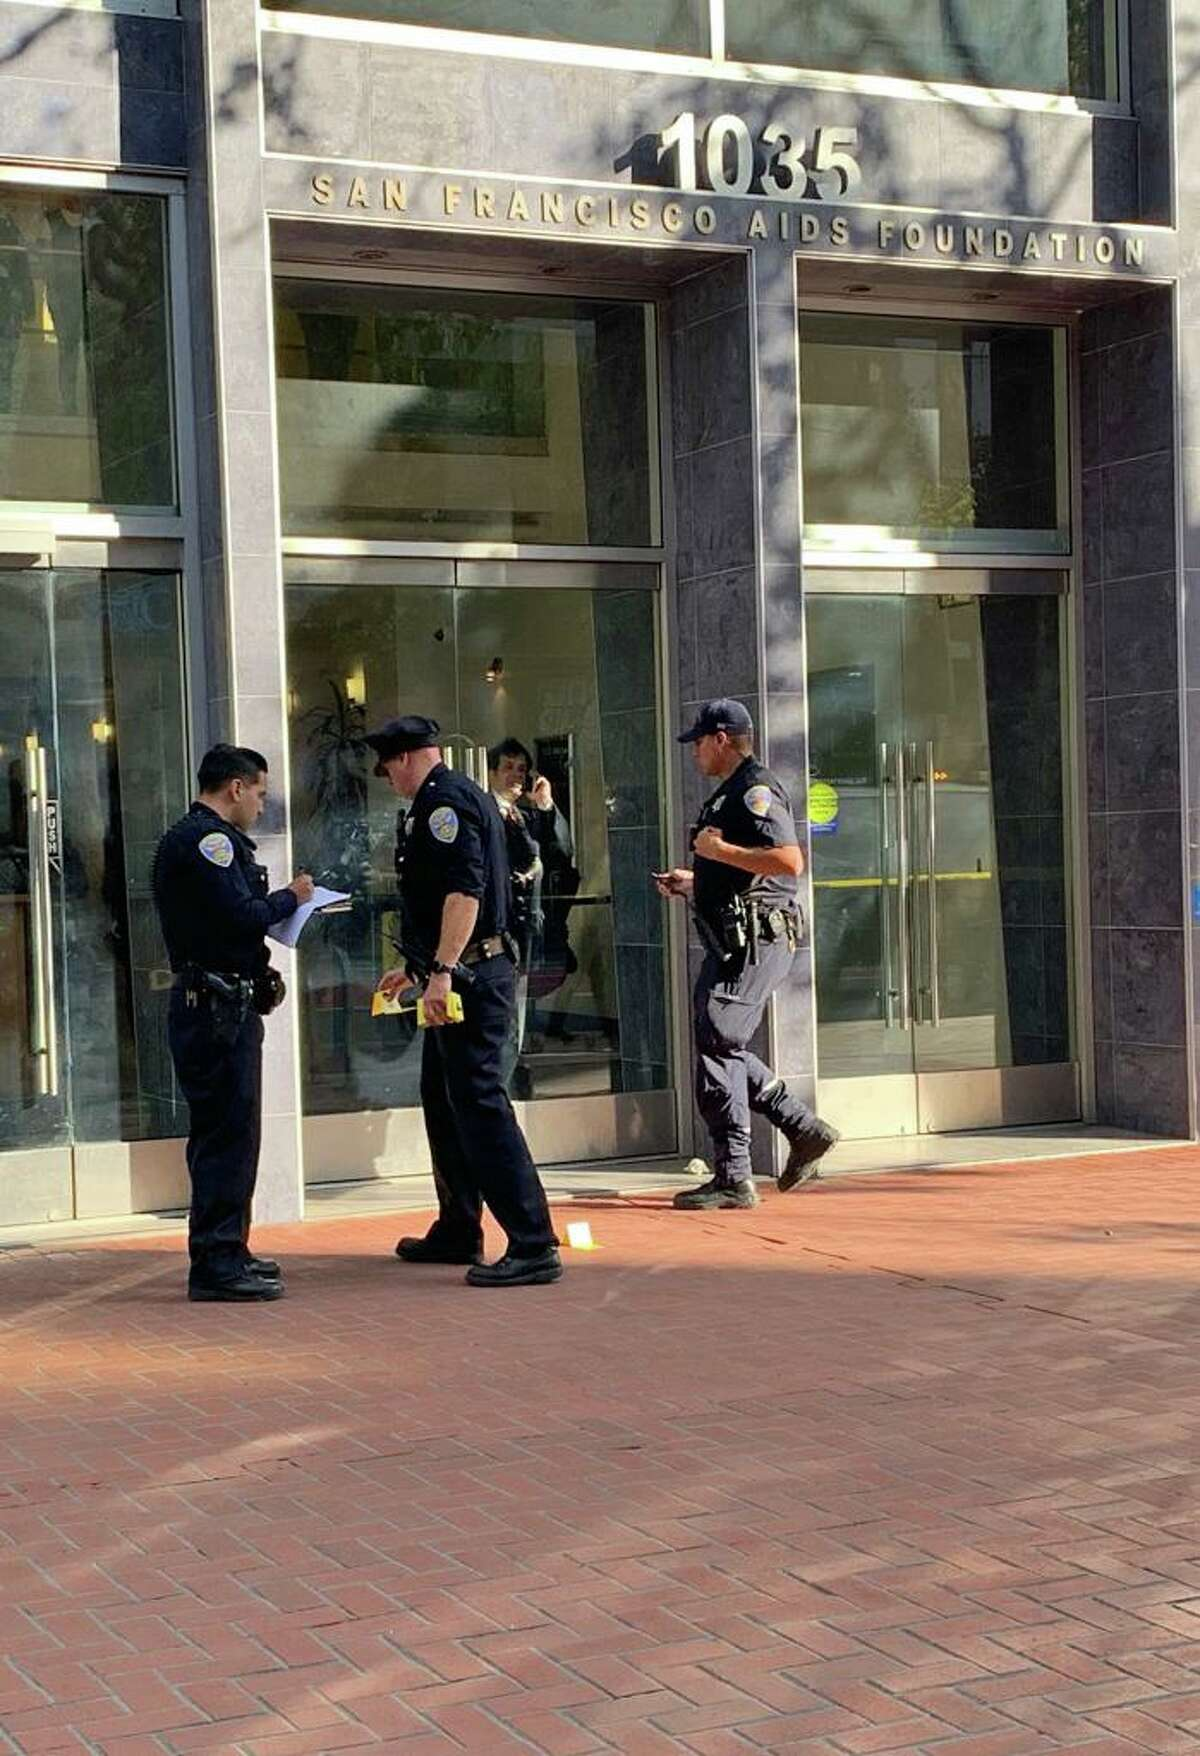 San Francisco police are investigate a shooting on Market Street that occurred during an altercation among several people Tuesday, August 20, 2019.